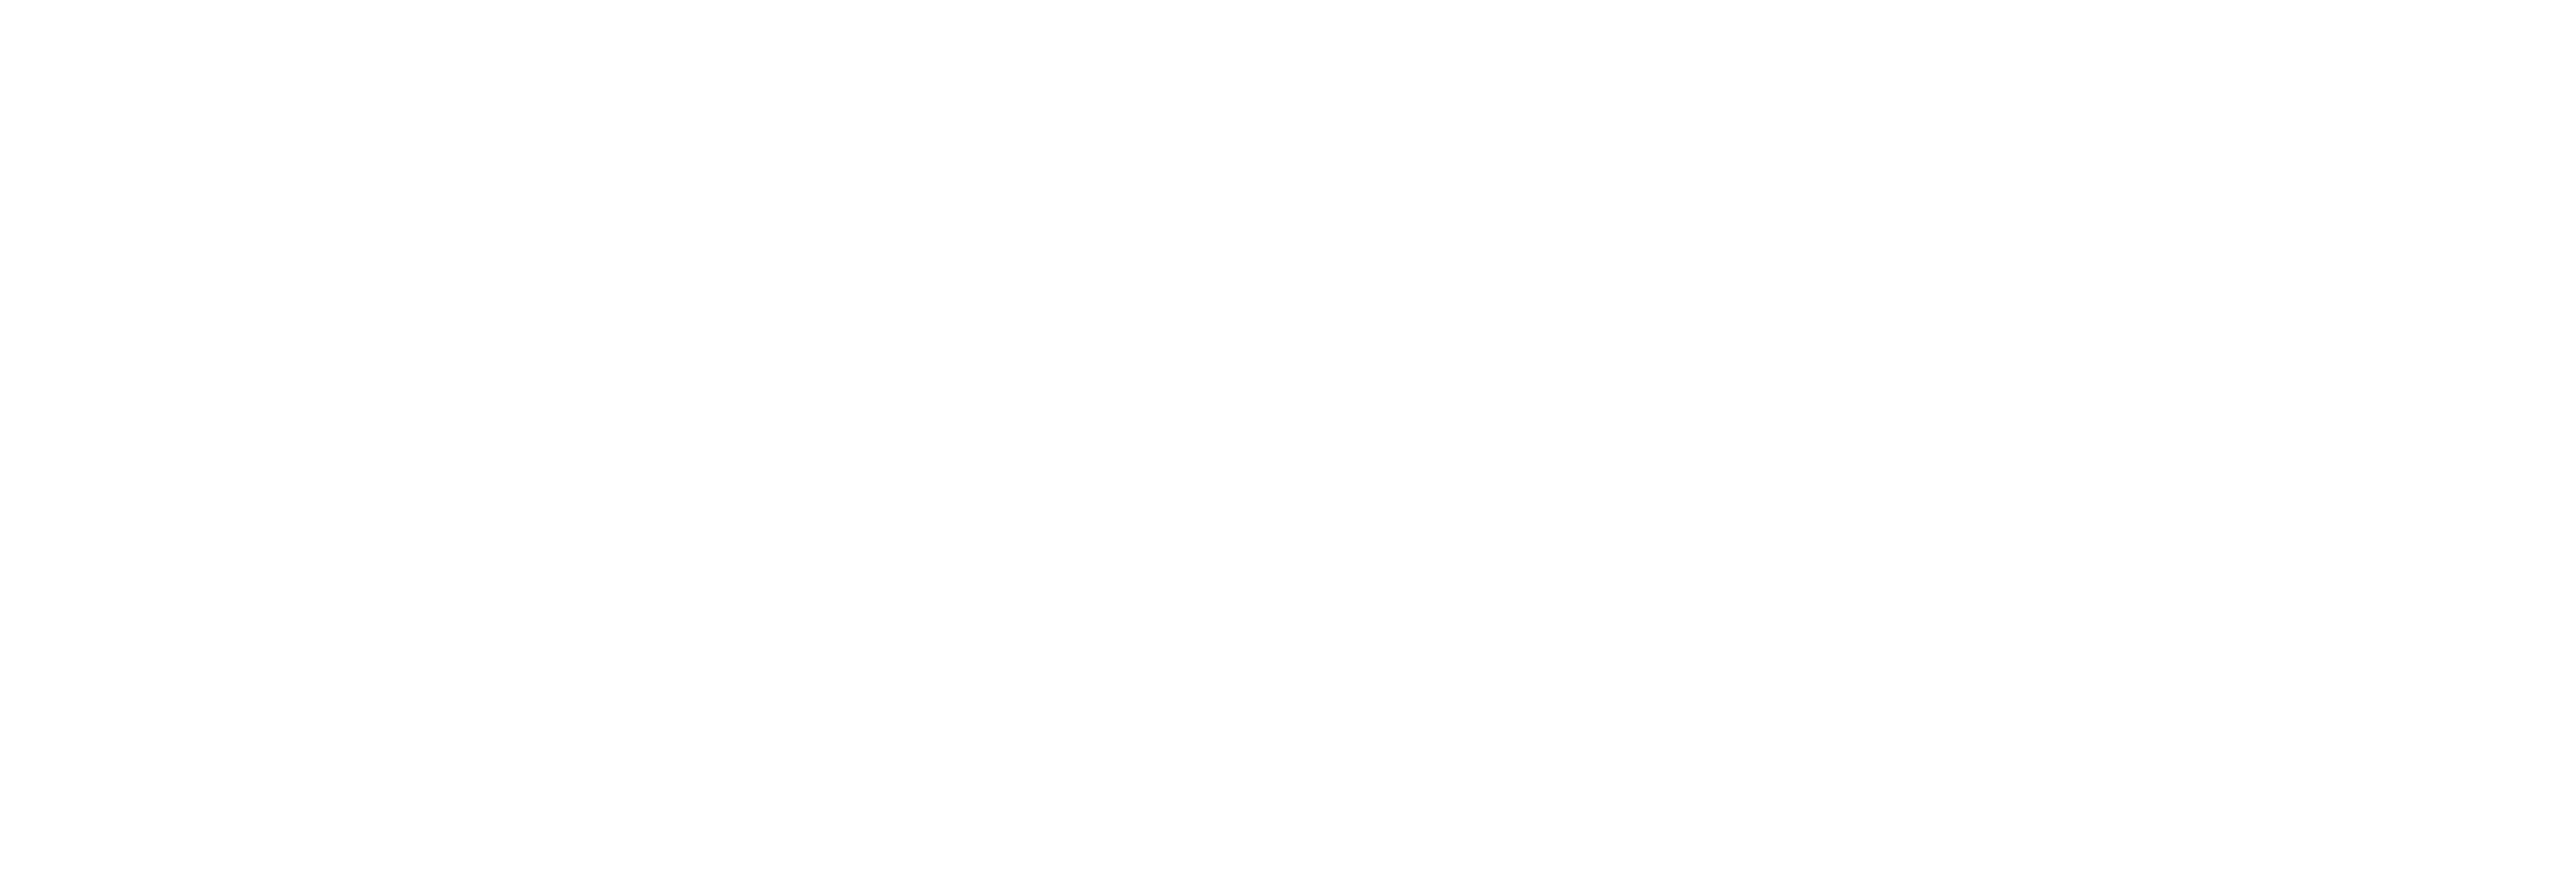 Paper & Packaging